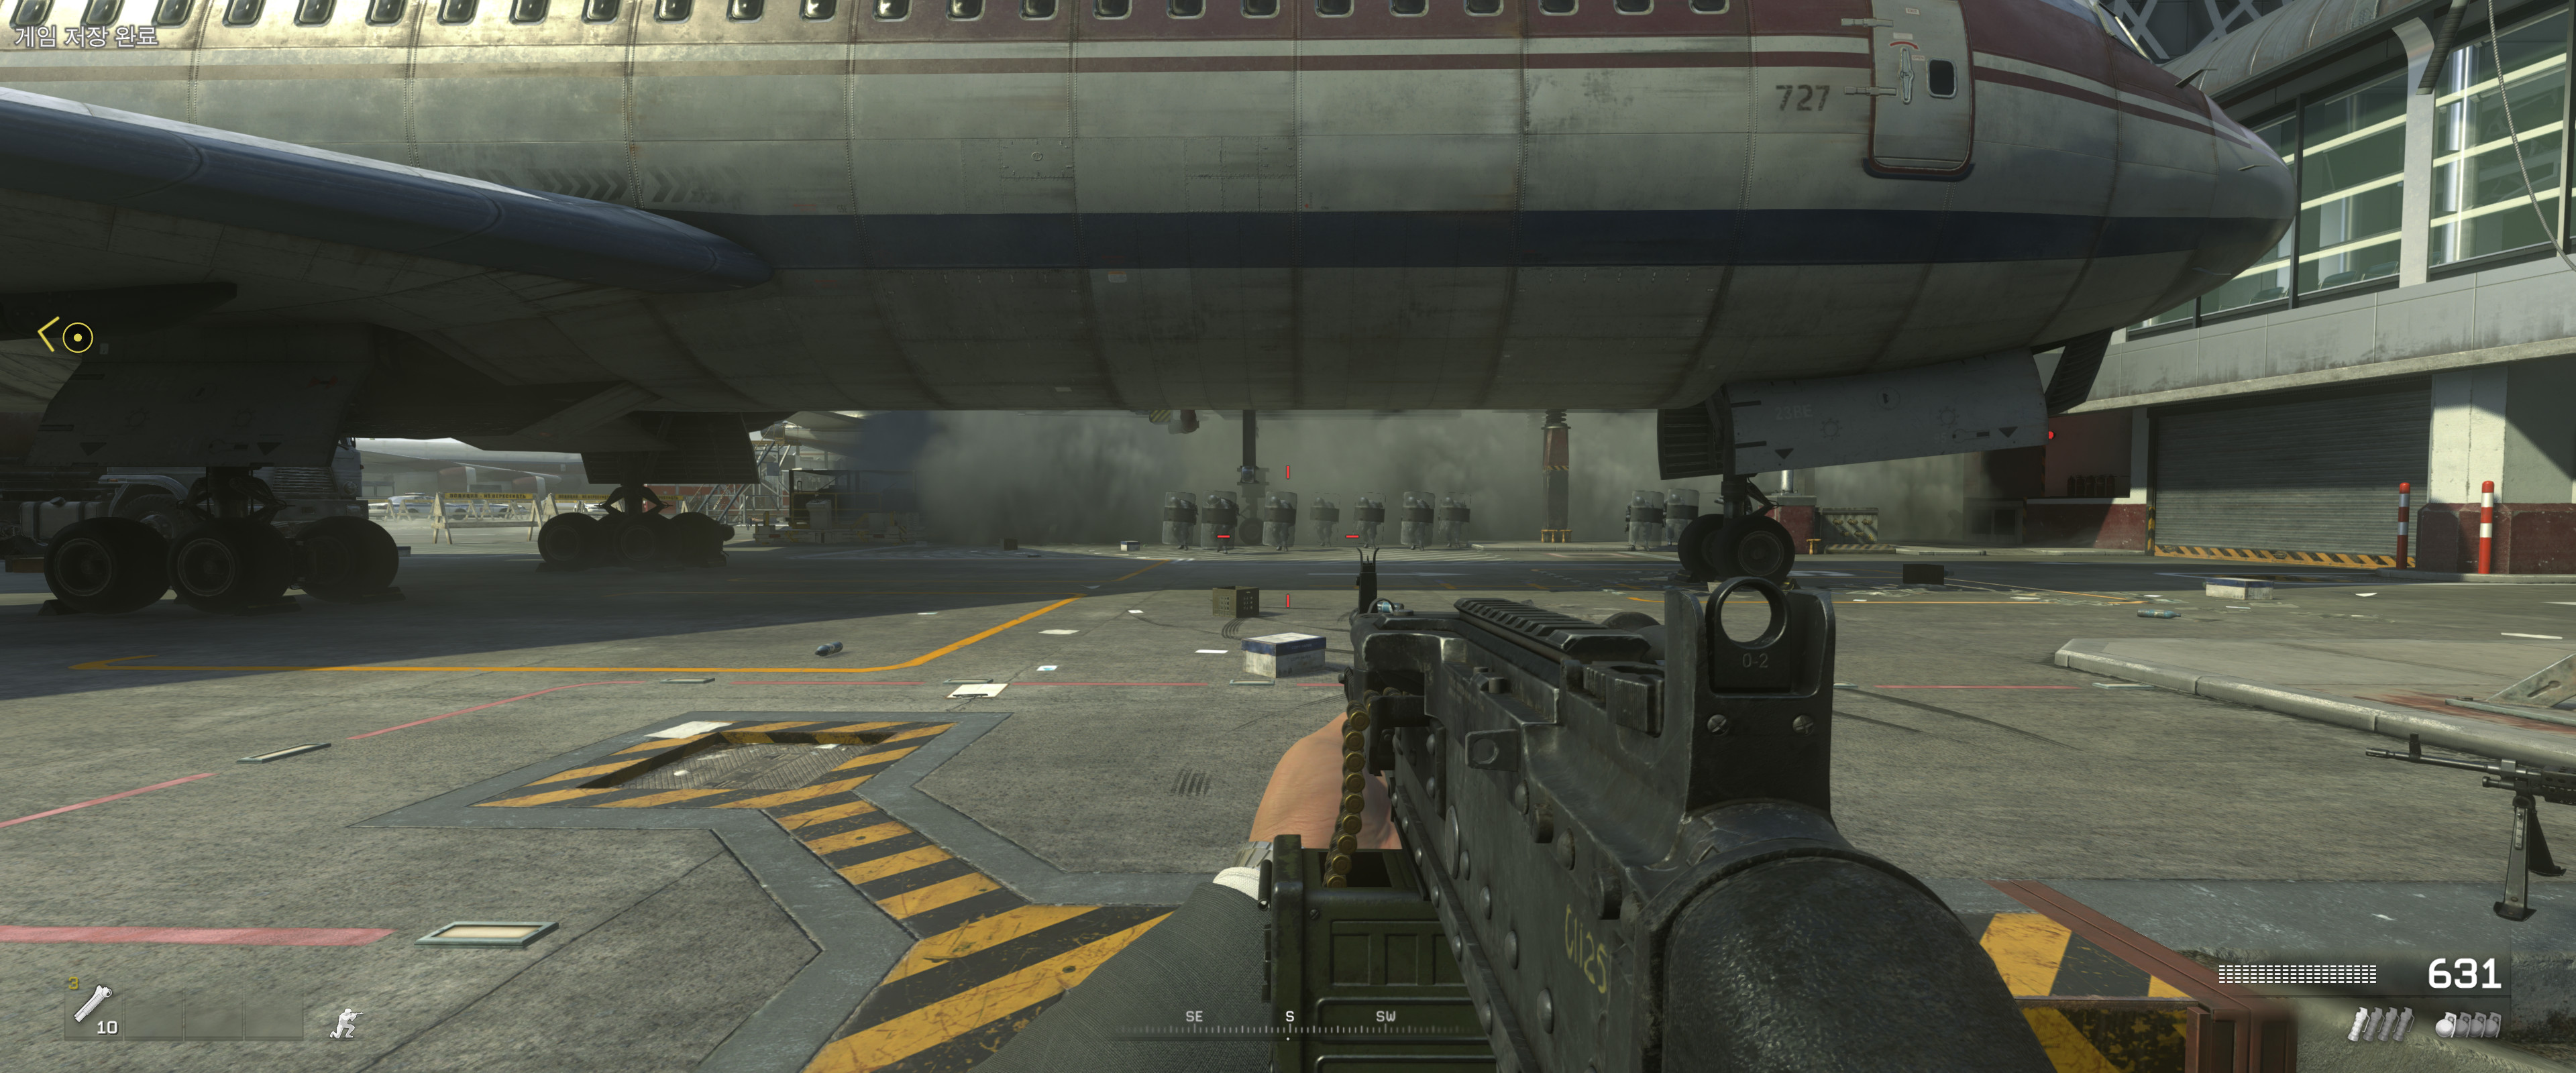 jpg_Call of Duty  Modern Warfare 2 Remastered Screenshot 2020.05.01 - 10.53.21.04.jpg